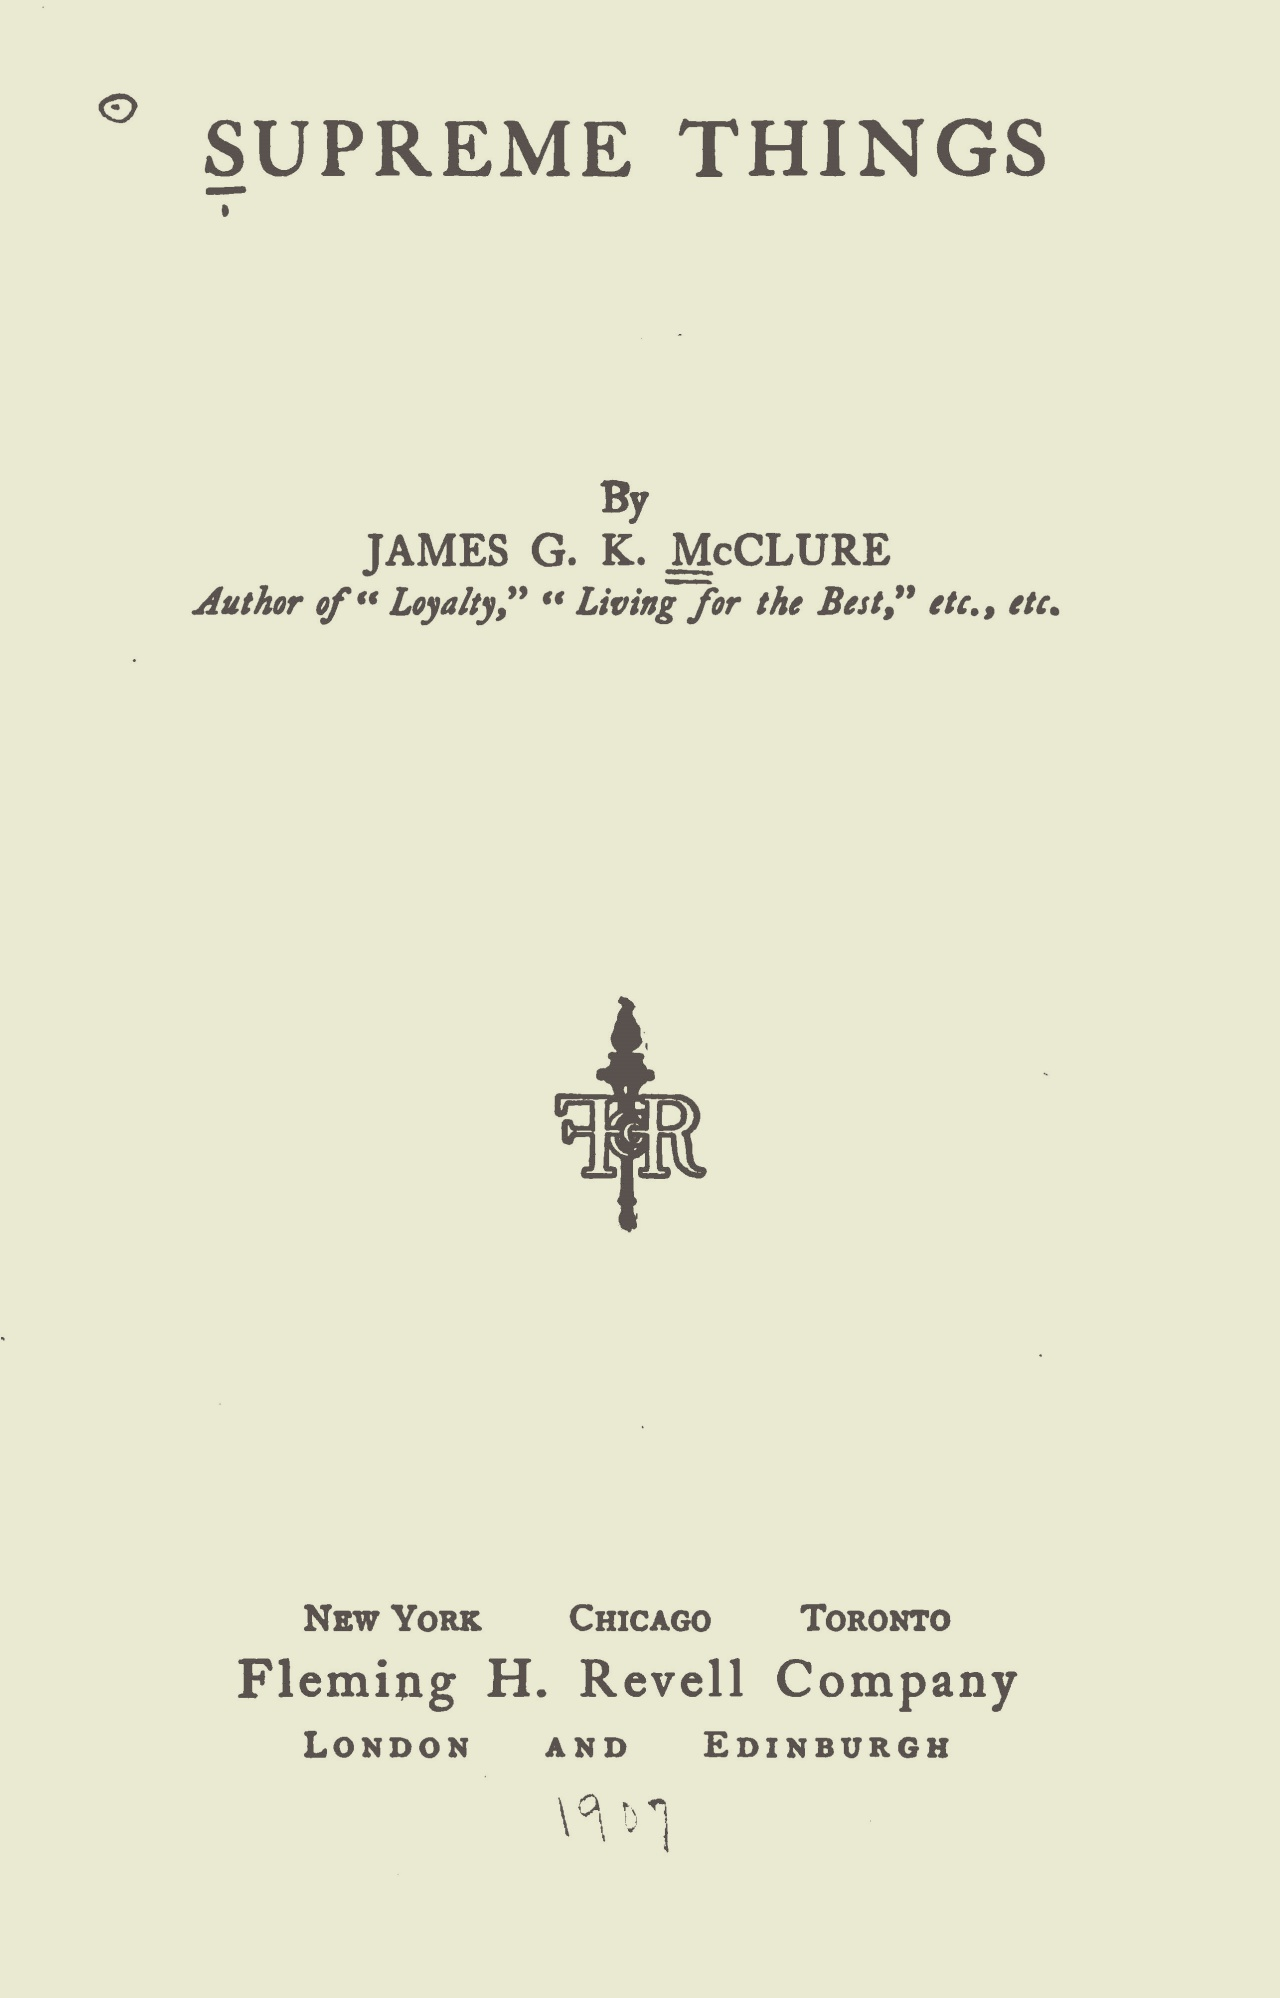 McClure, Sr., James Gore King, Supreme Things Title Page.jpg